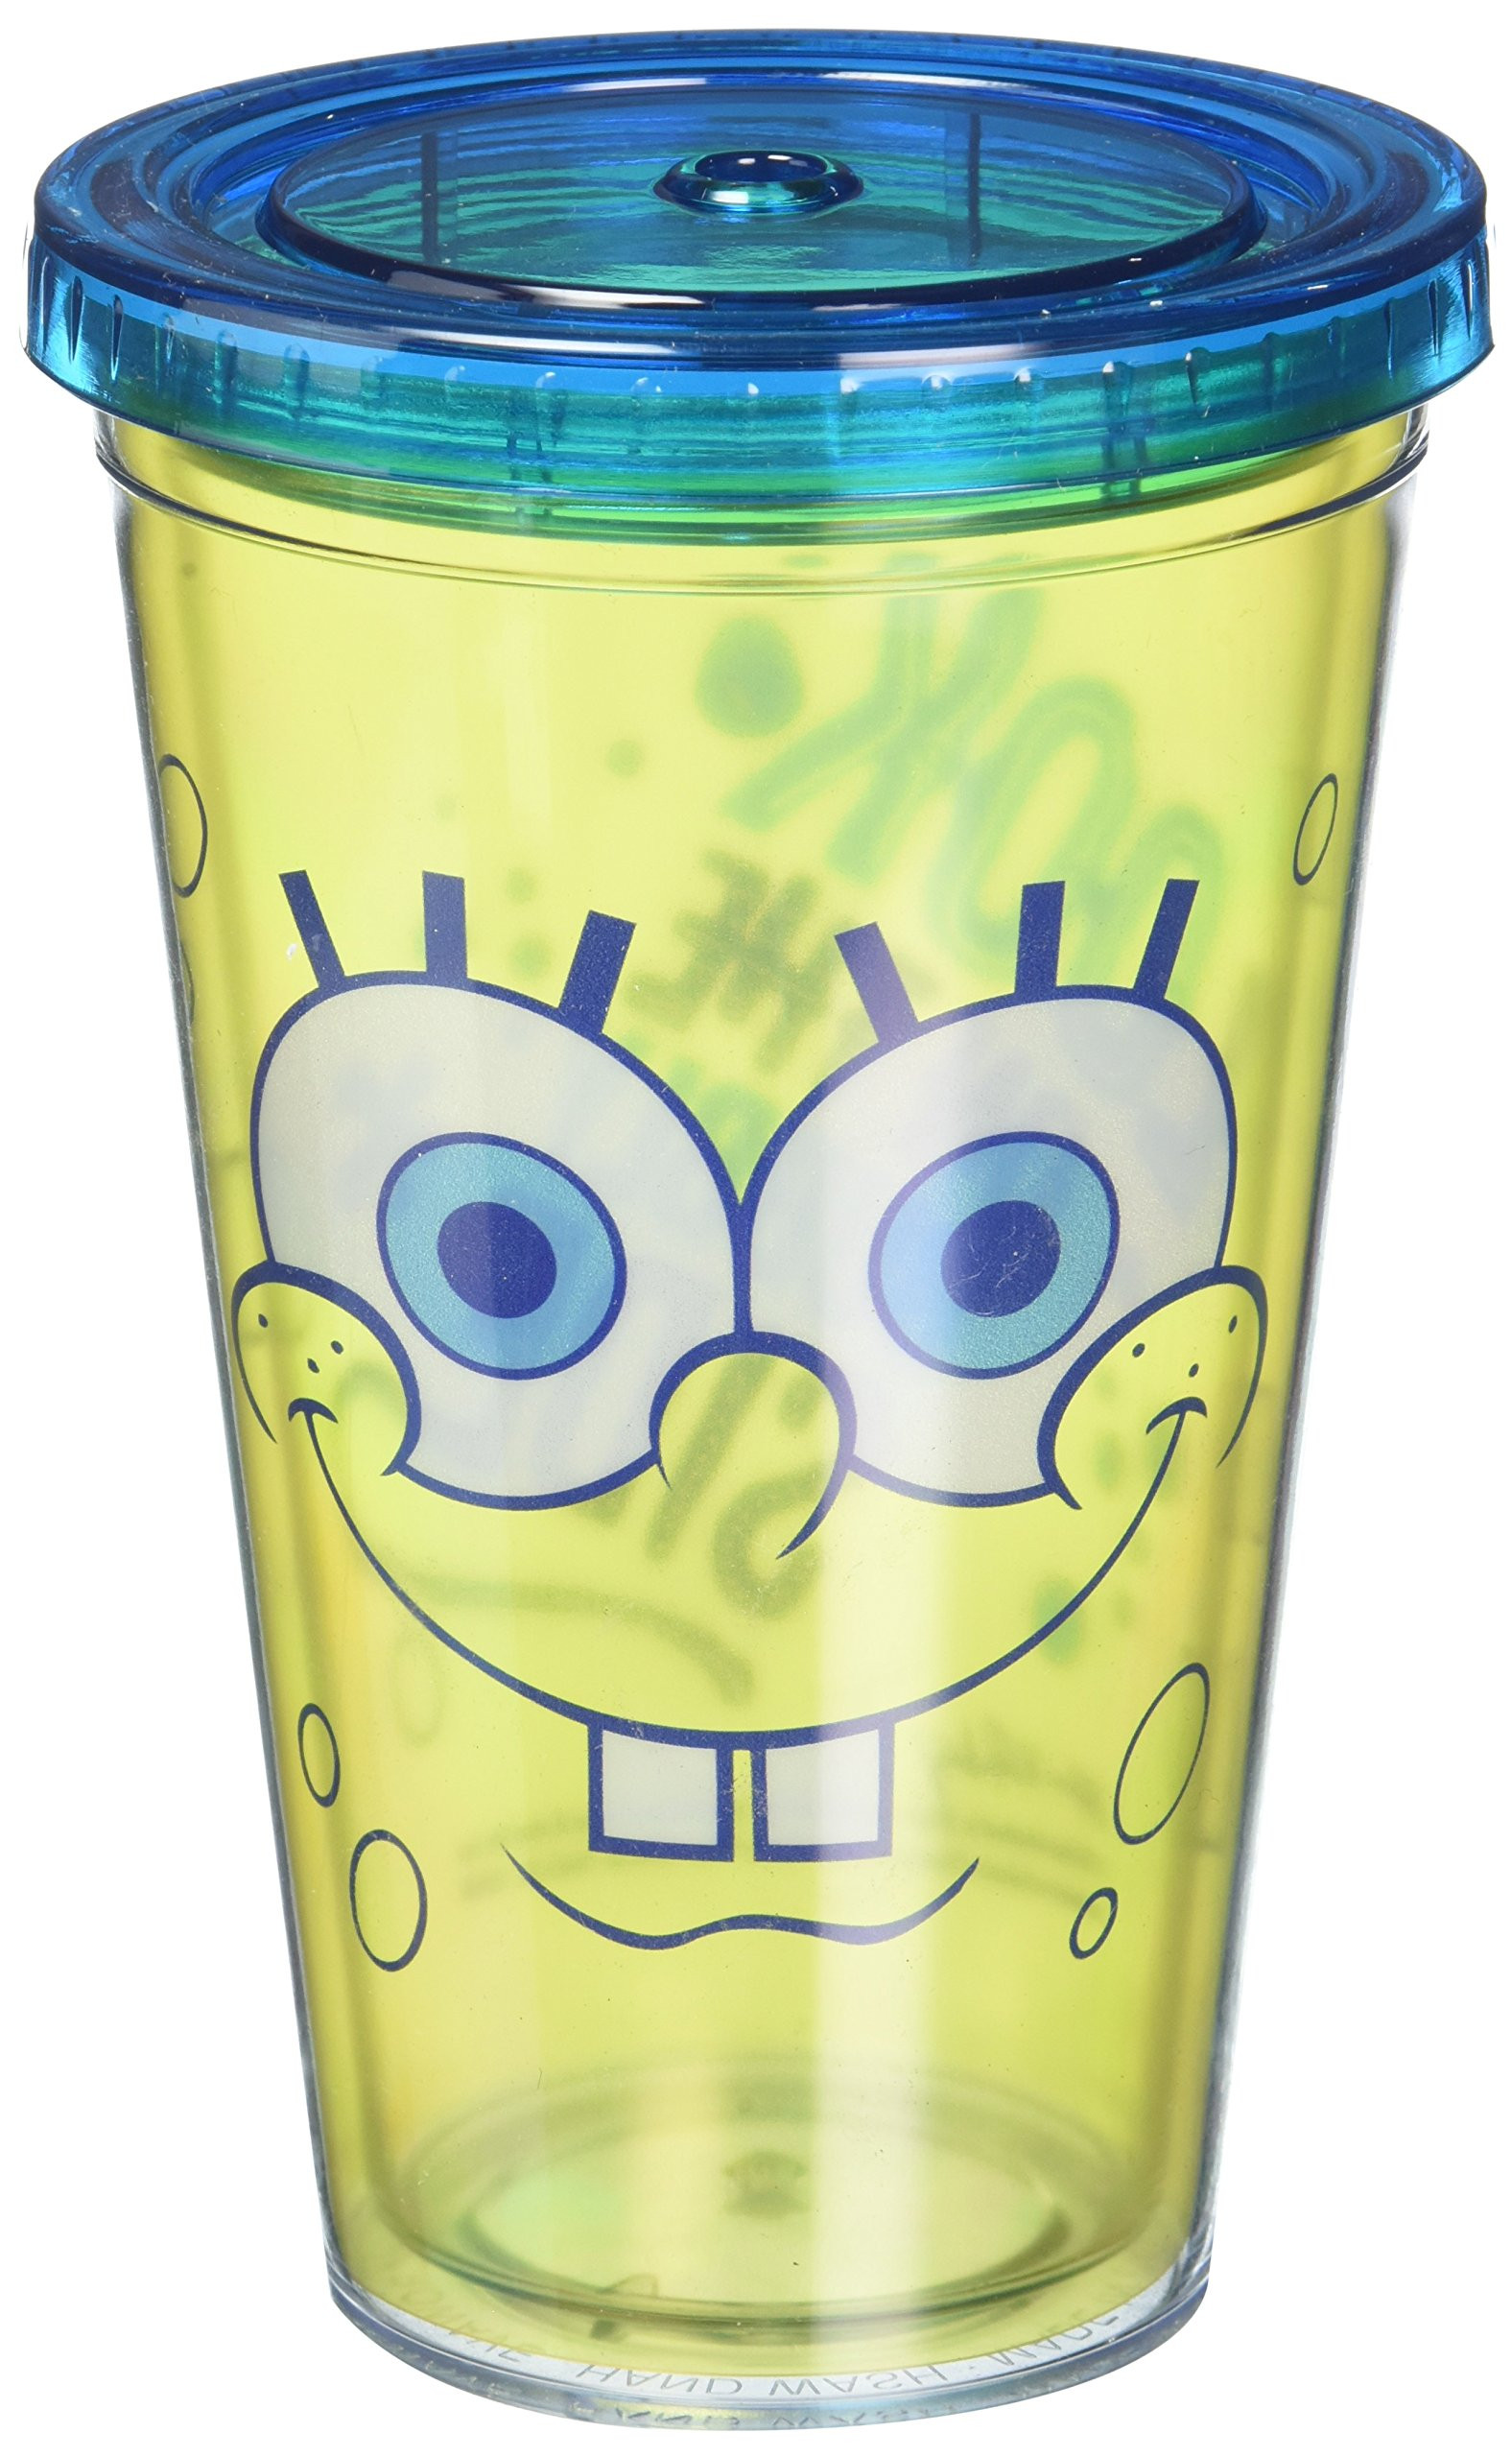 ICUP Nickelodeon - SpongeBob SquarePants Big Happy Face Cup with Straw, Clear